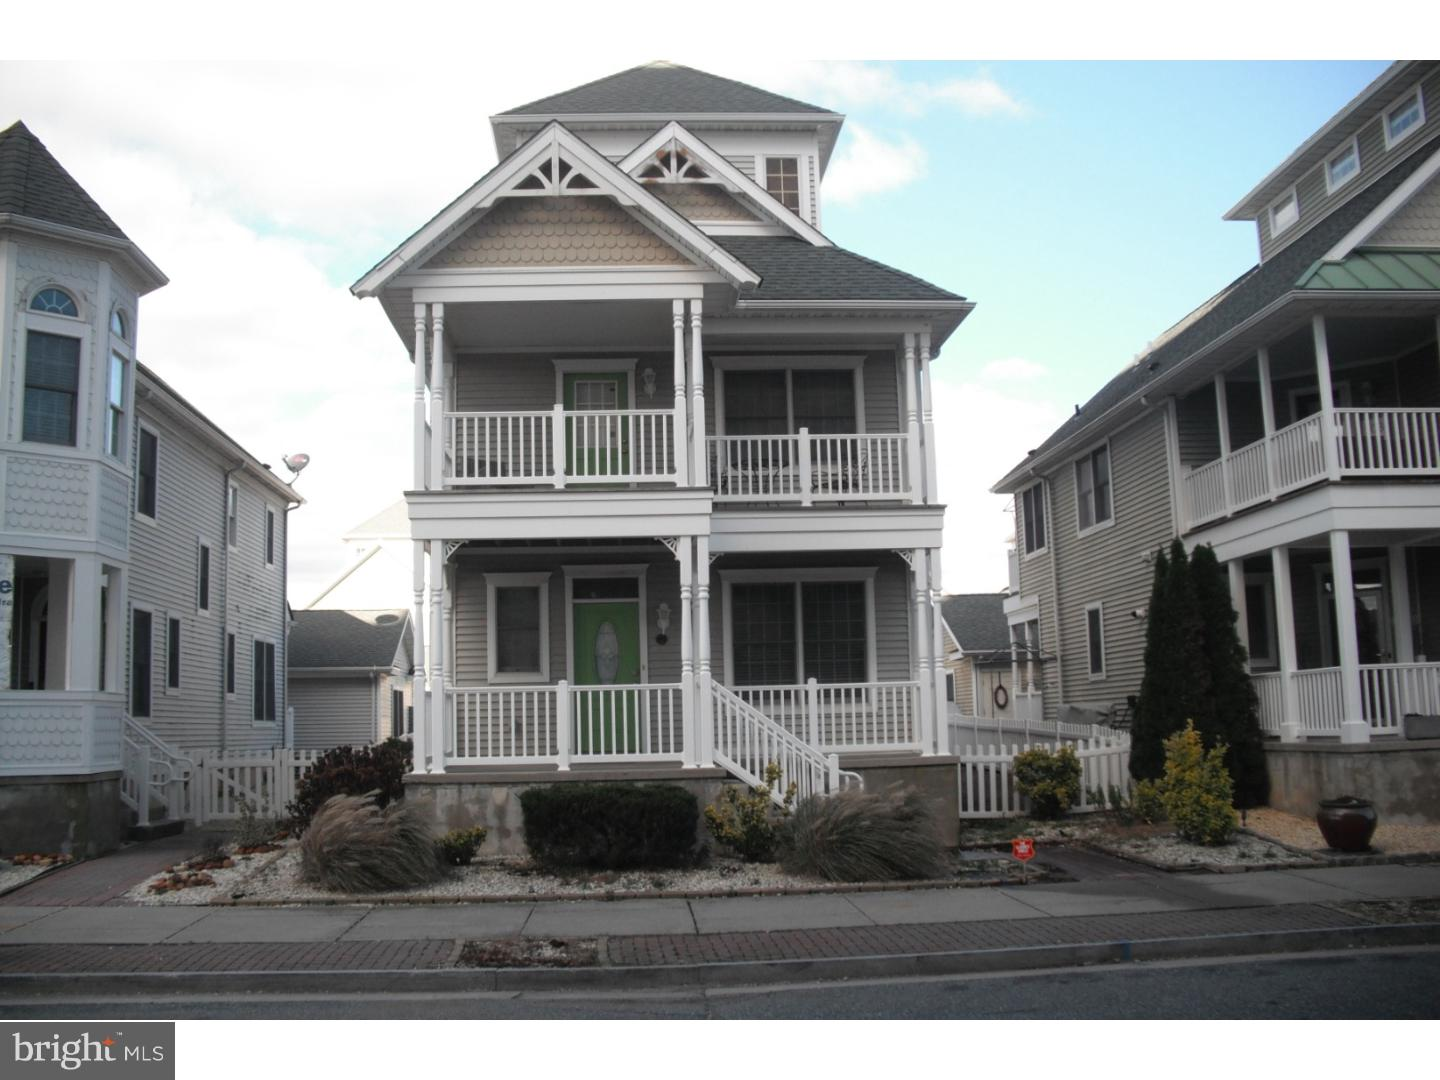 Single Family Home for Sale at 105 ADRIATIC Avenue Atlantic City, New Jersey 08401 United States